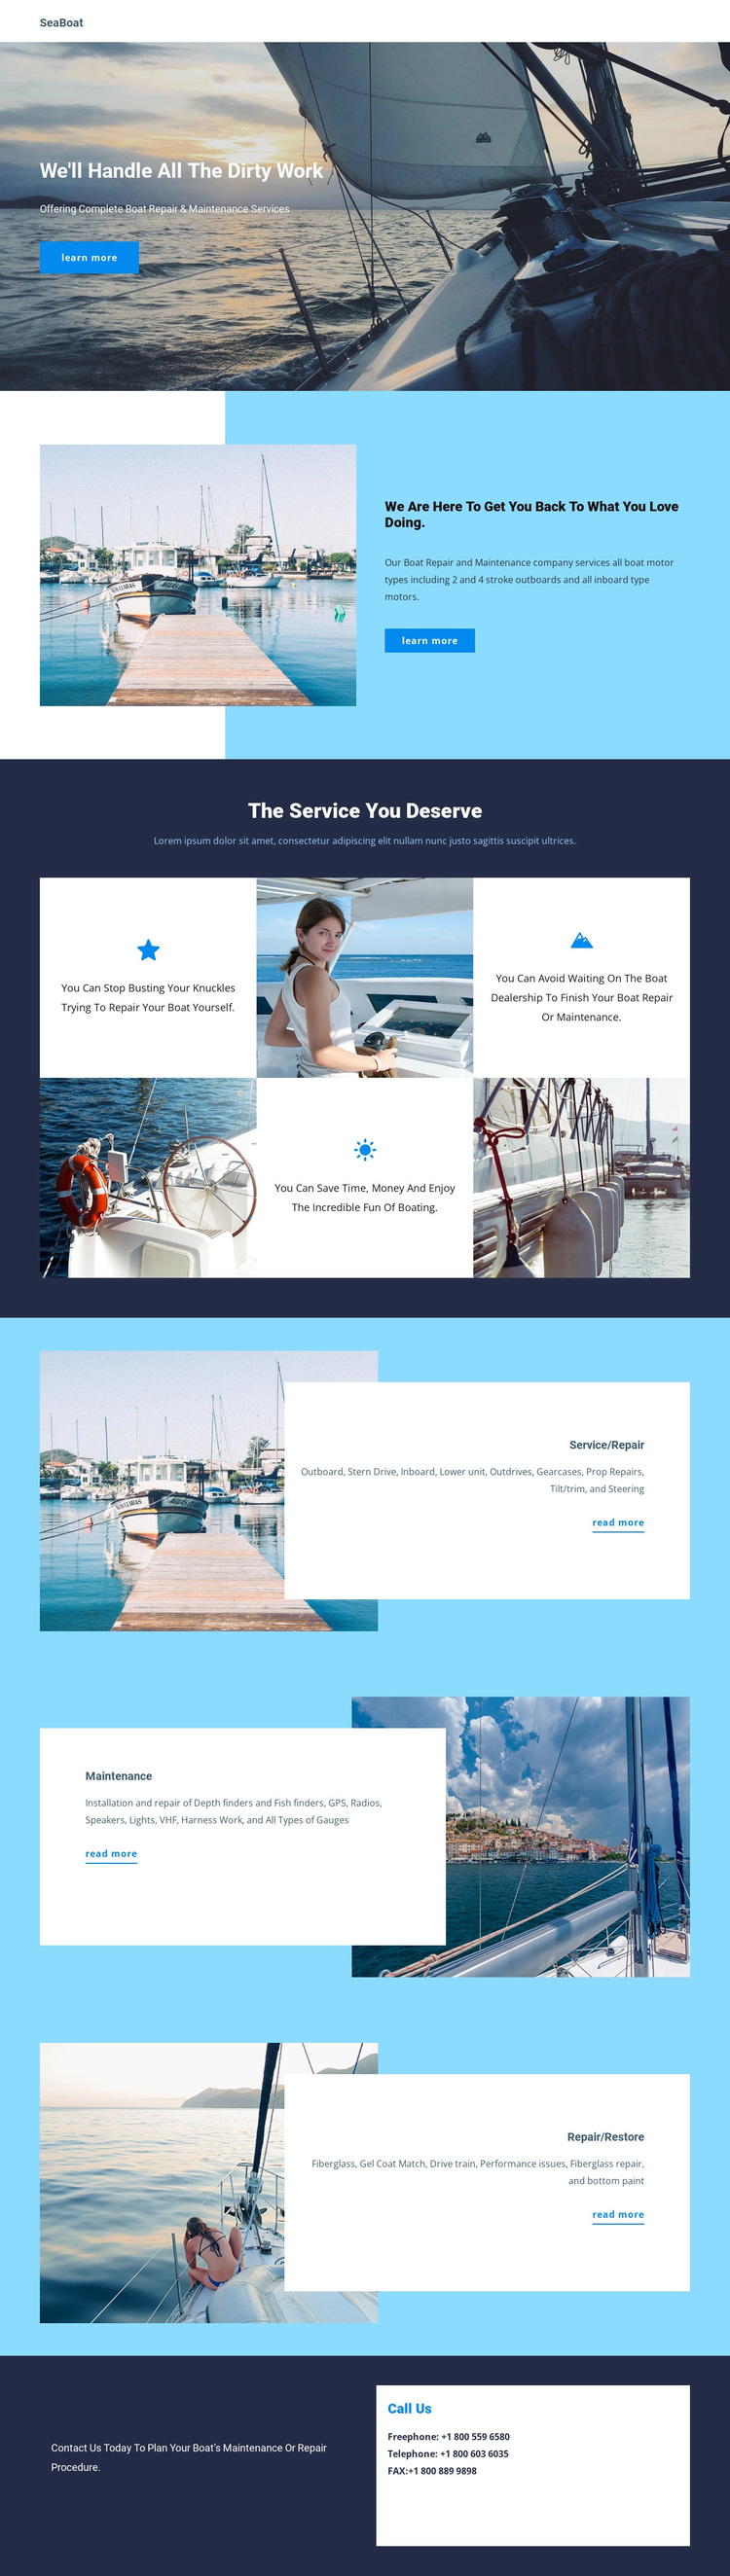 Travel on Seaboat Template